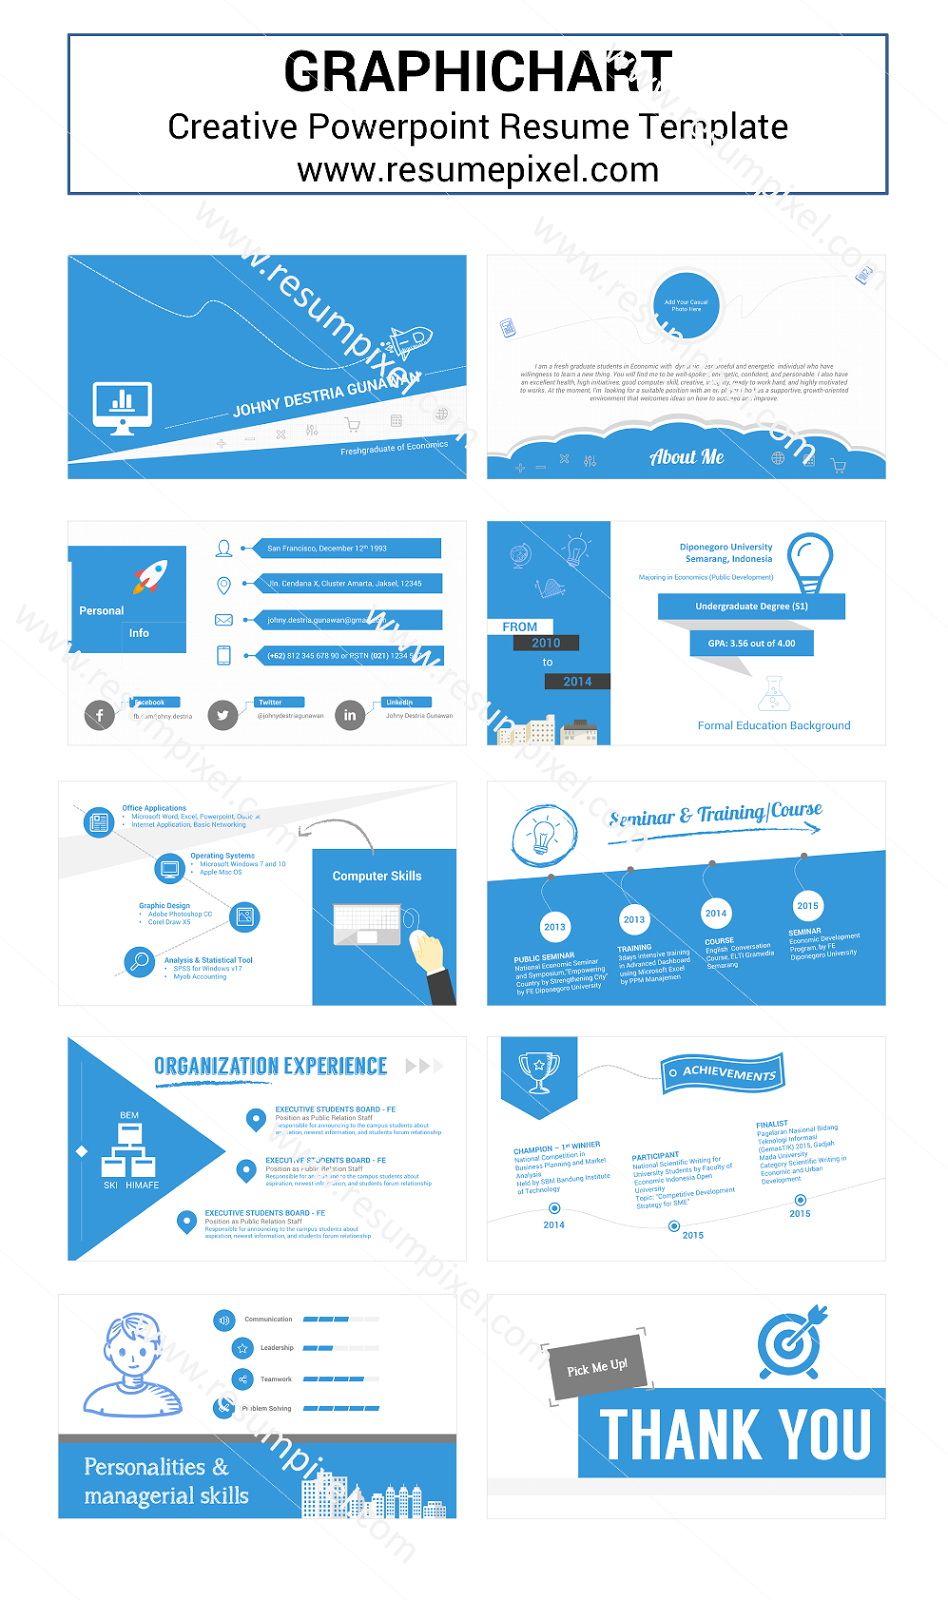 Resume Example ChrisSpurlockGraphicResume EDIT Infographic Resume     Wareout Com powerpoint resume templates